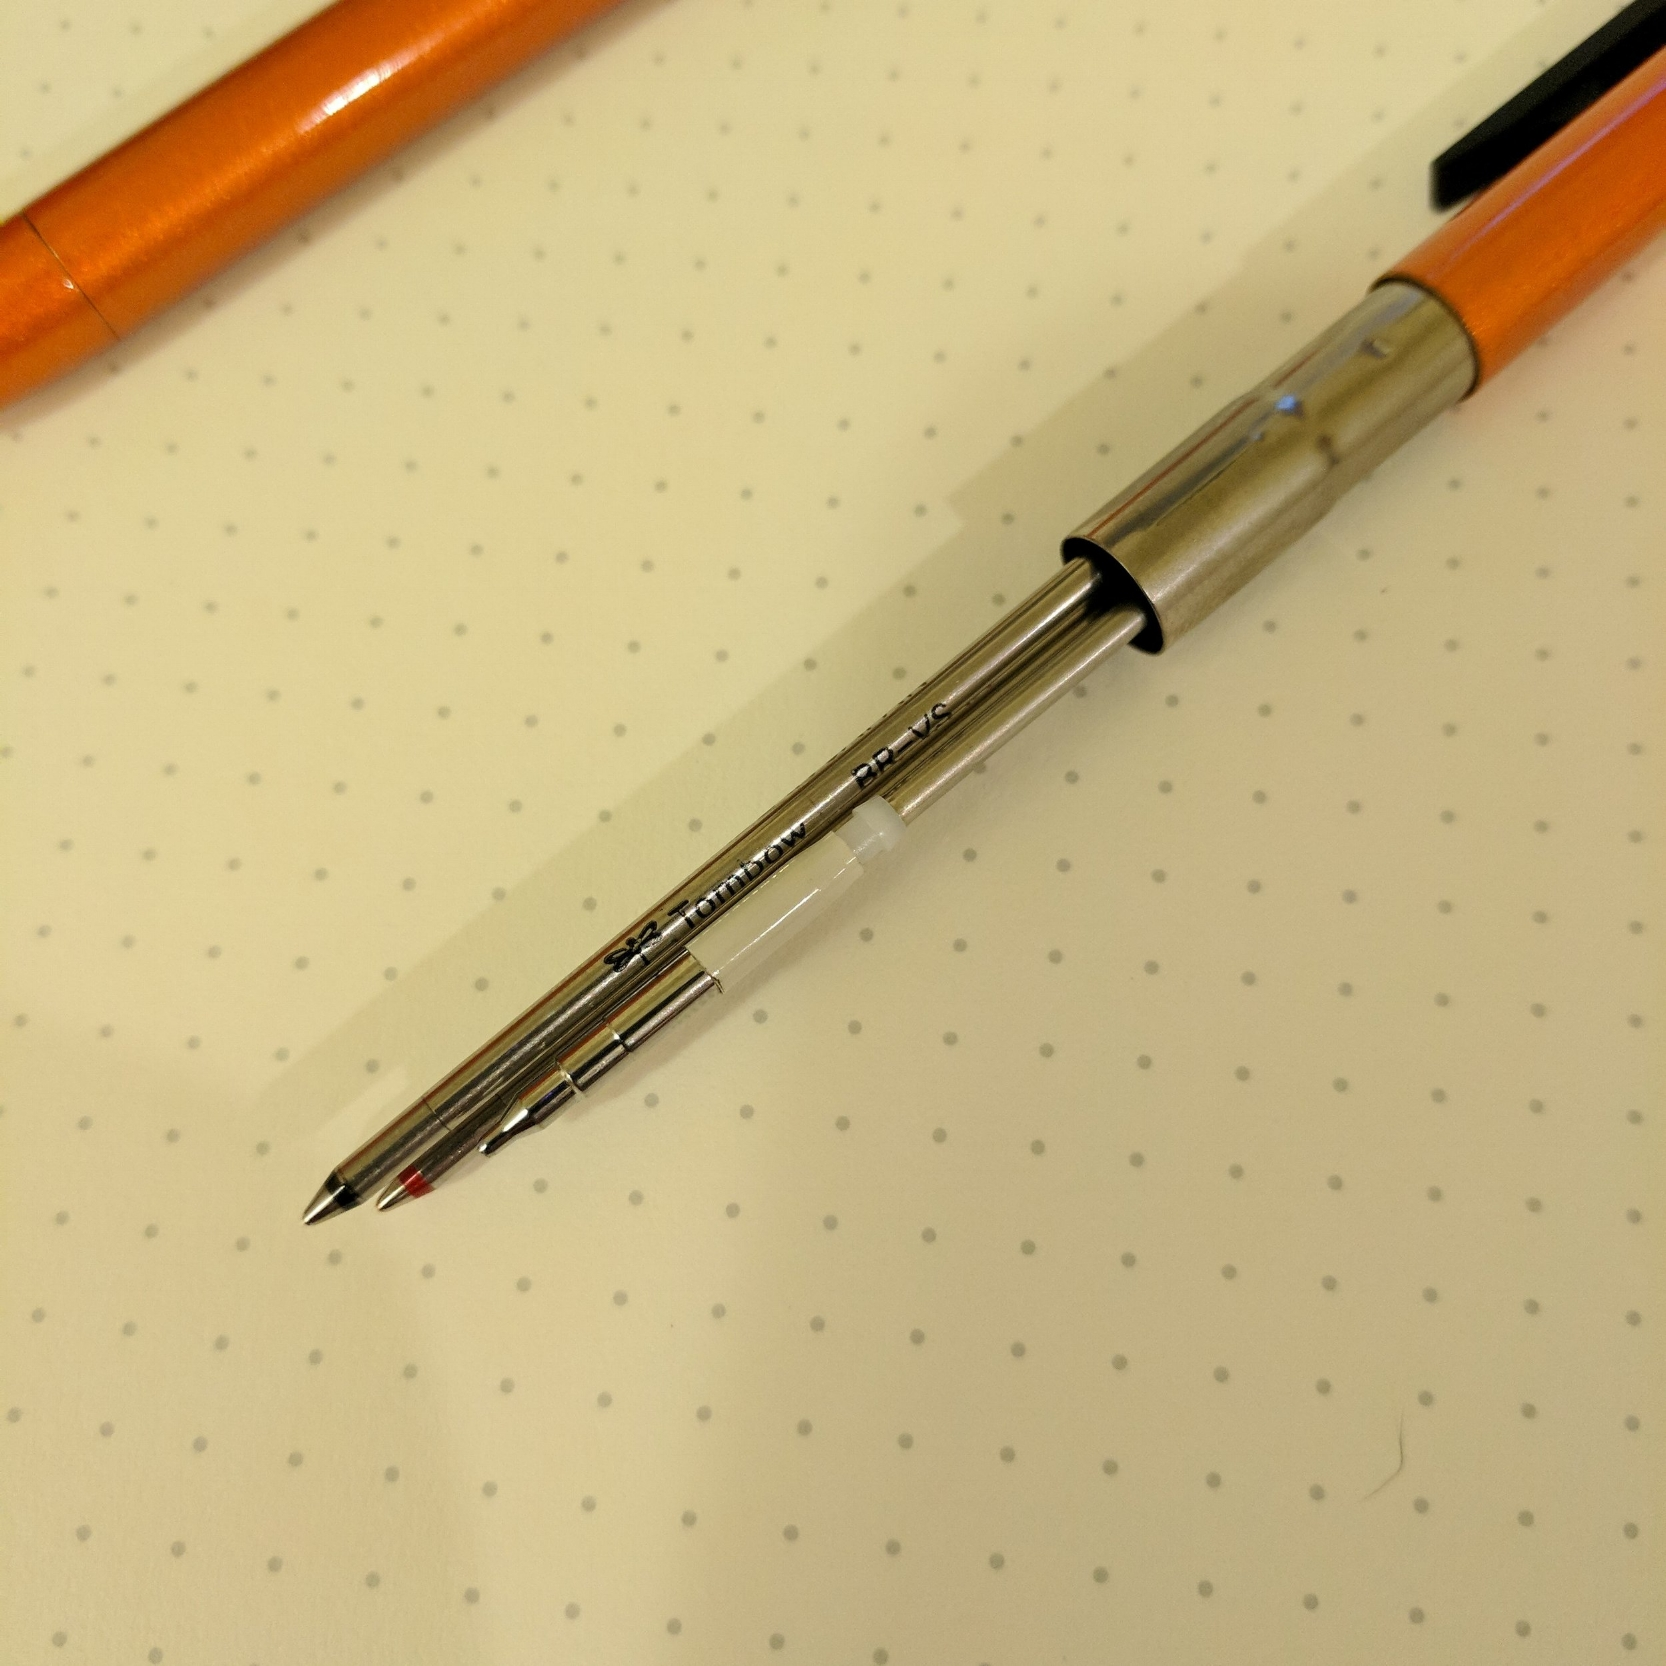 Pull off the bottom part of the barrel to expose the refills. D1 refills are universal, so any pen that accepts them is exceptionally versatile.